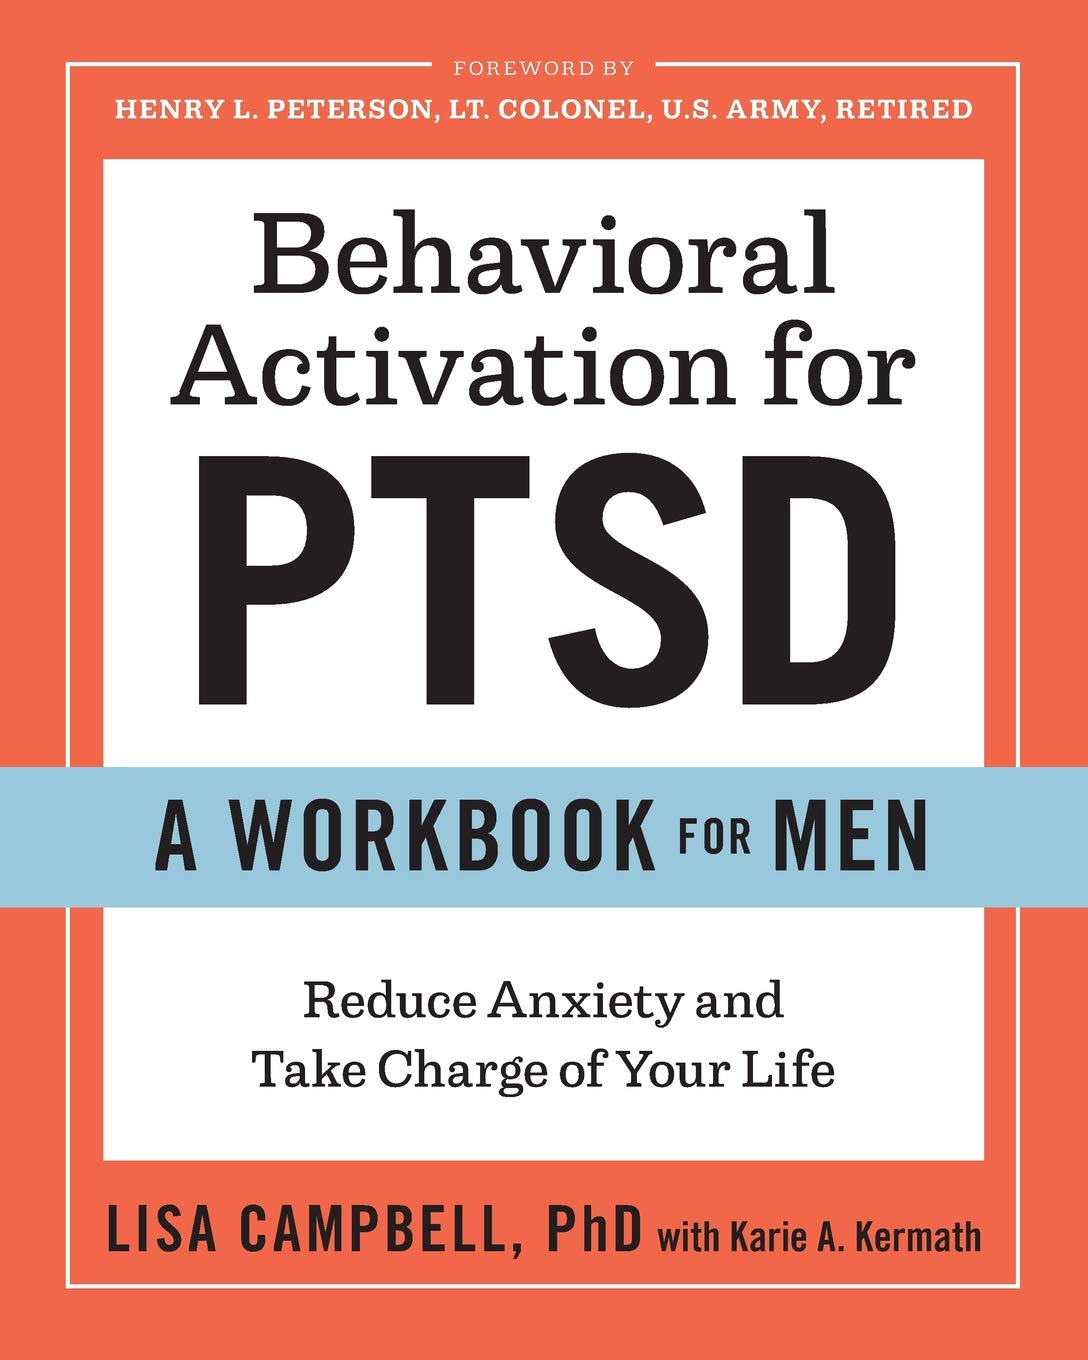 Image OfBehavioral Activation For PTSD: A Workbook For Men: Reduce Anxiety And Take Charge Of Your Life